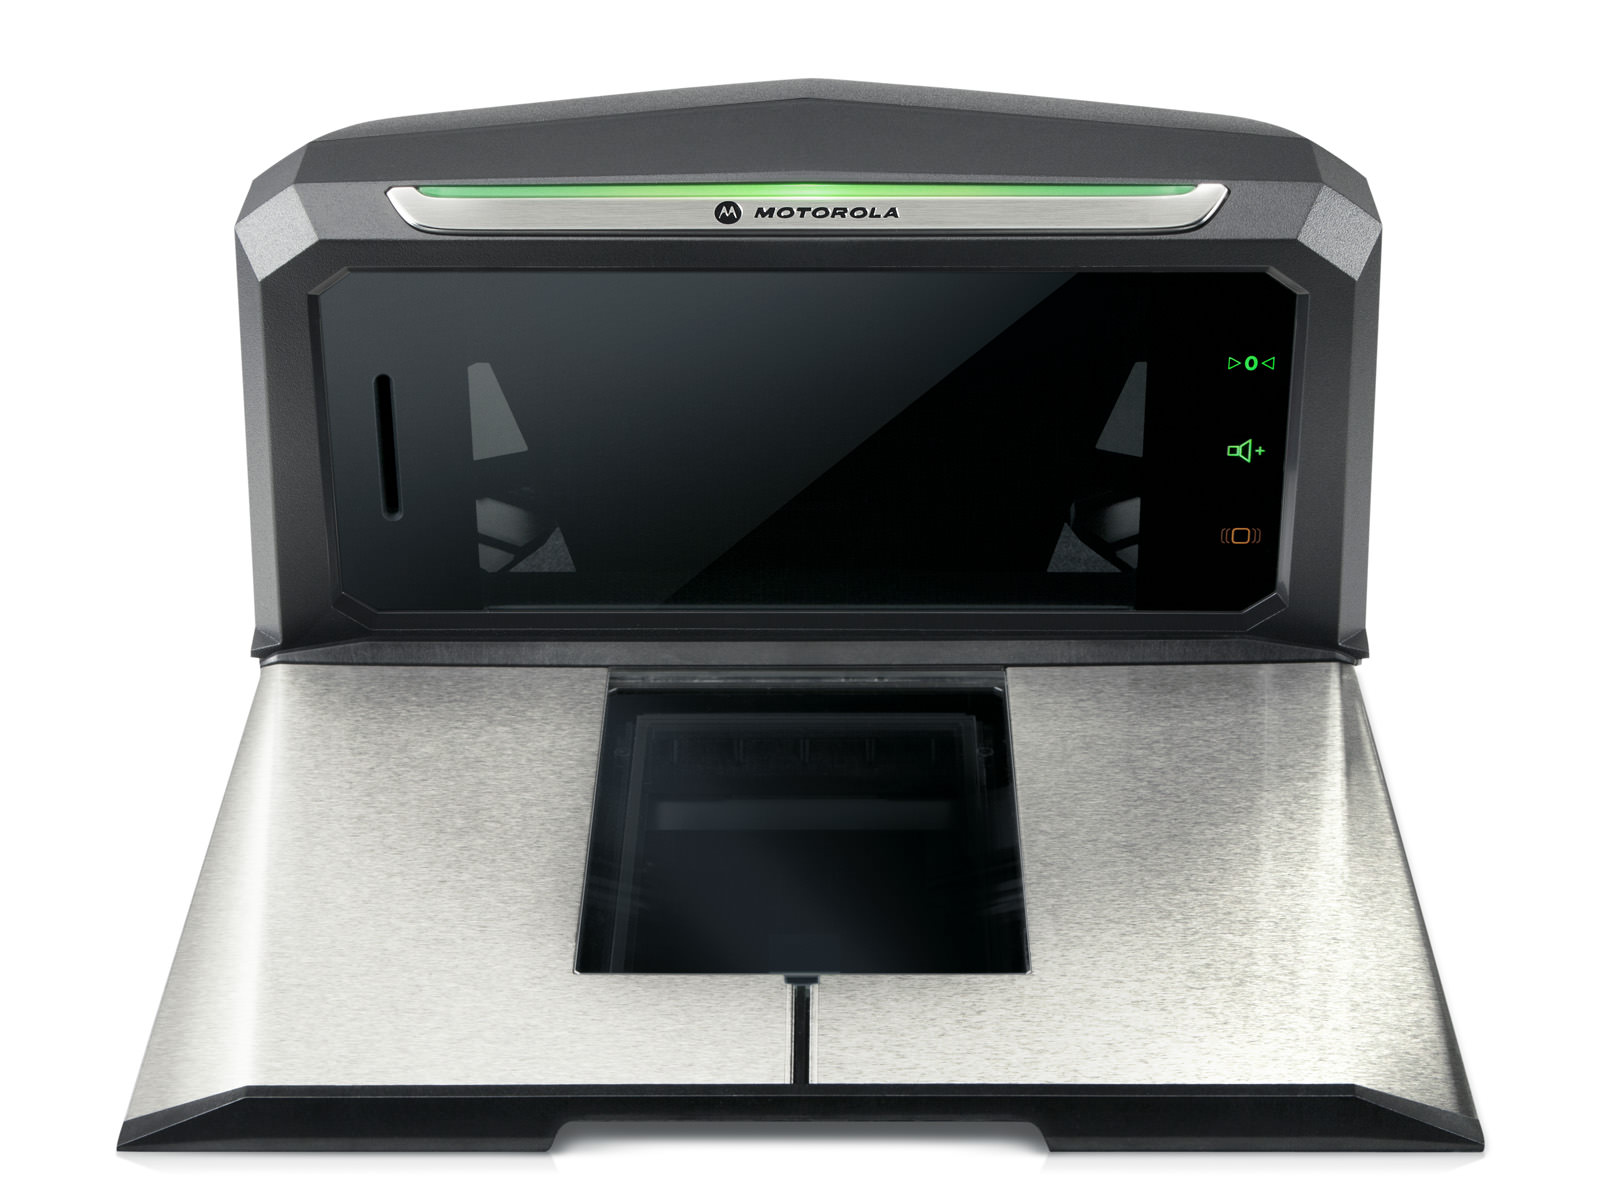 Front view of the MP6000 Bioptic scanner